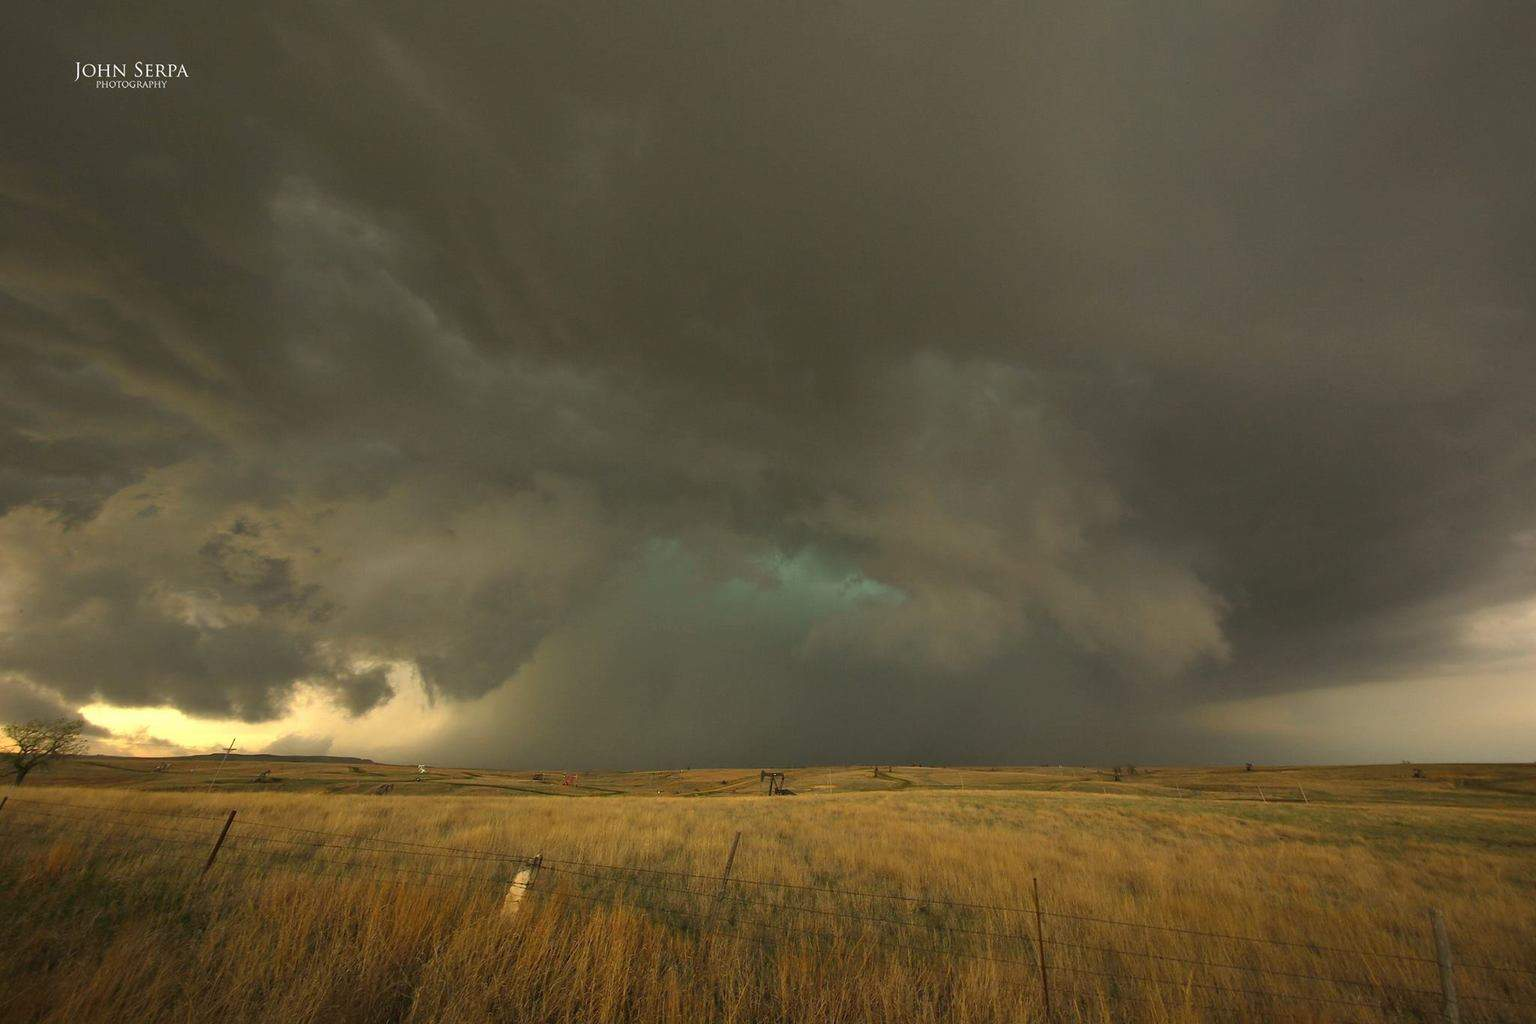 Hail to Kansas! An HP supercell covers the prairie with tennis ball size hail. I shot this photo yesterday a mile or so southwest of Lucas, KS.